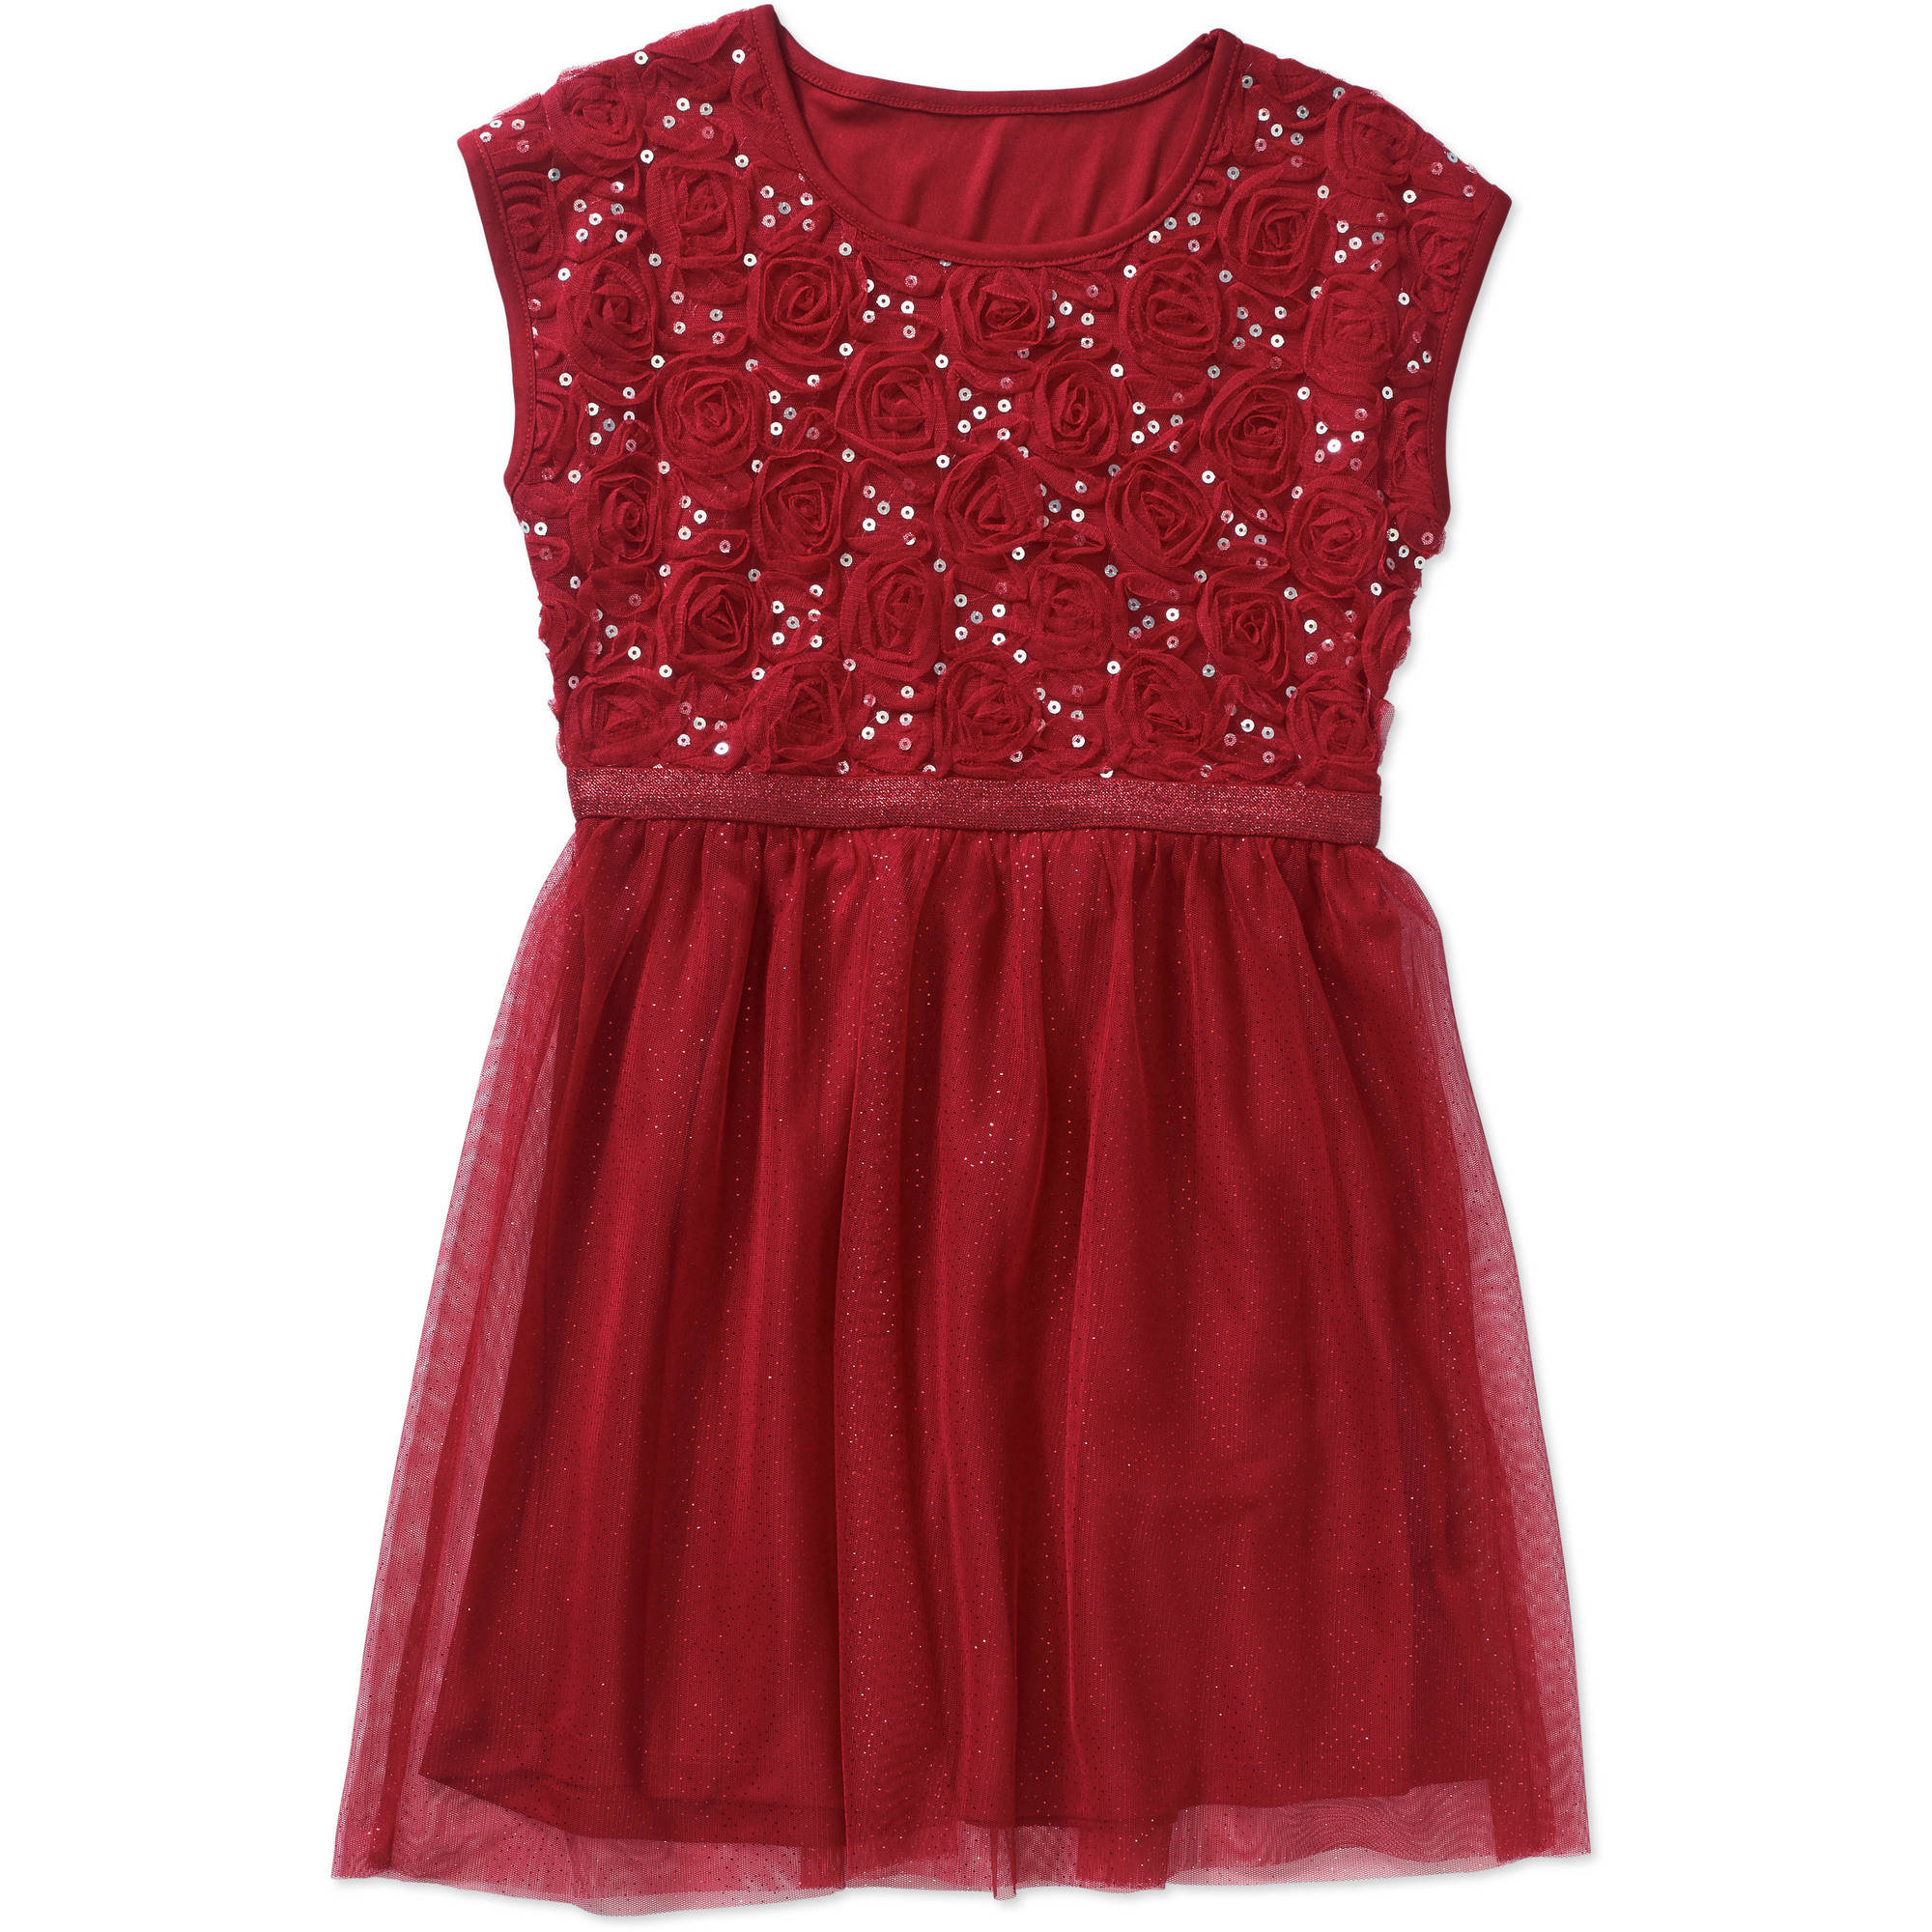 George Girls' Soutache Sequin Dress with Spark Tulle